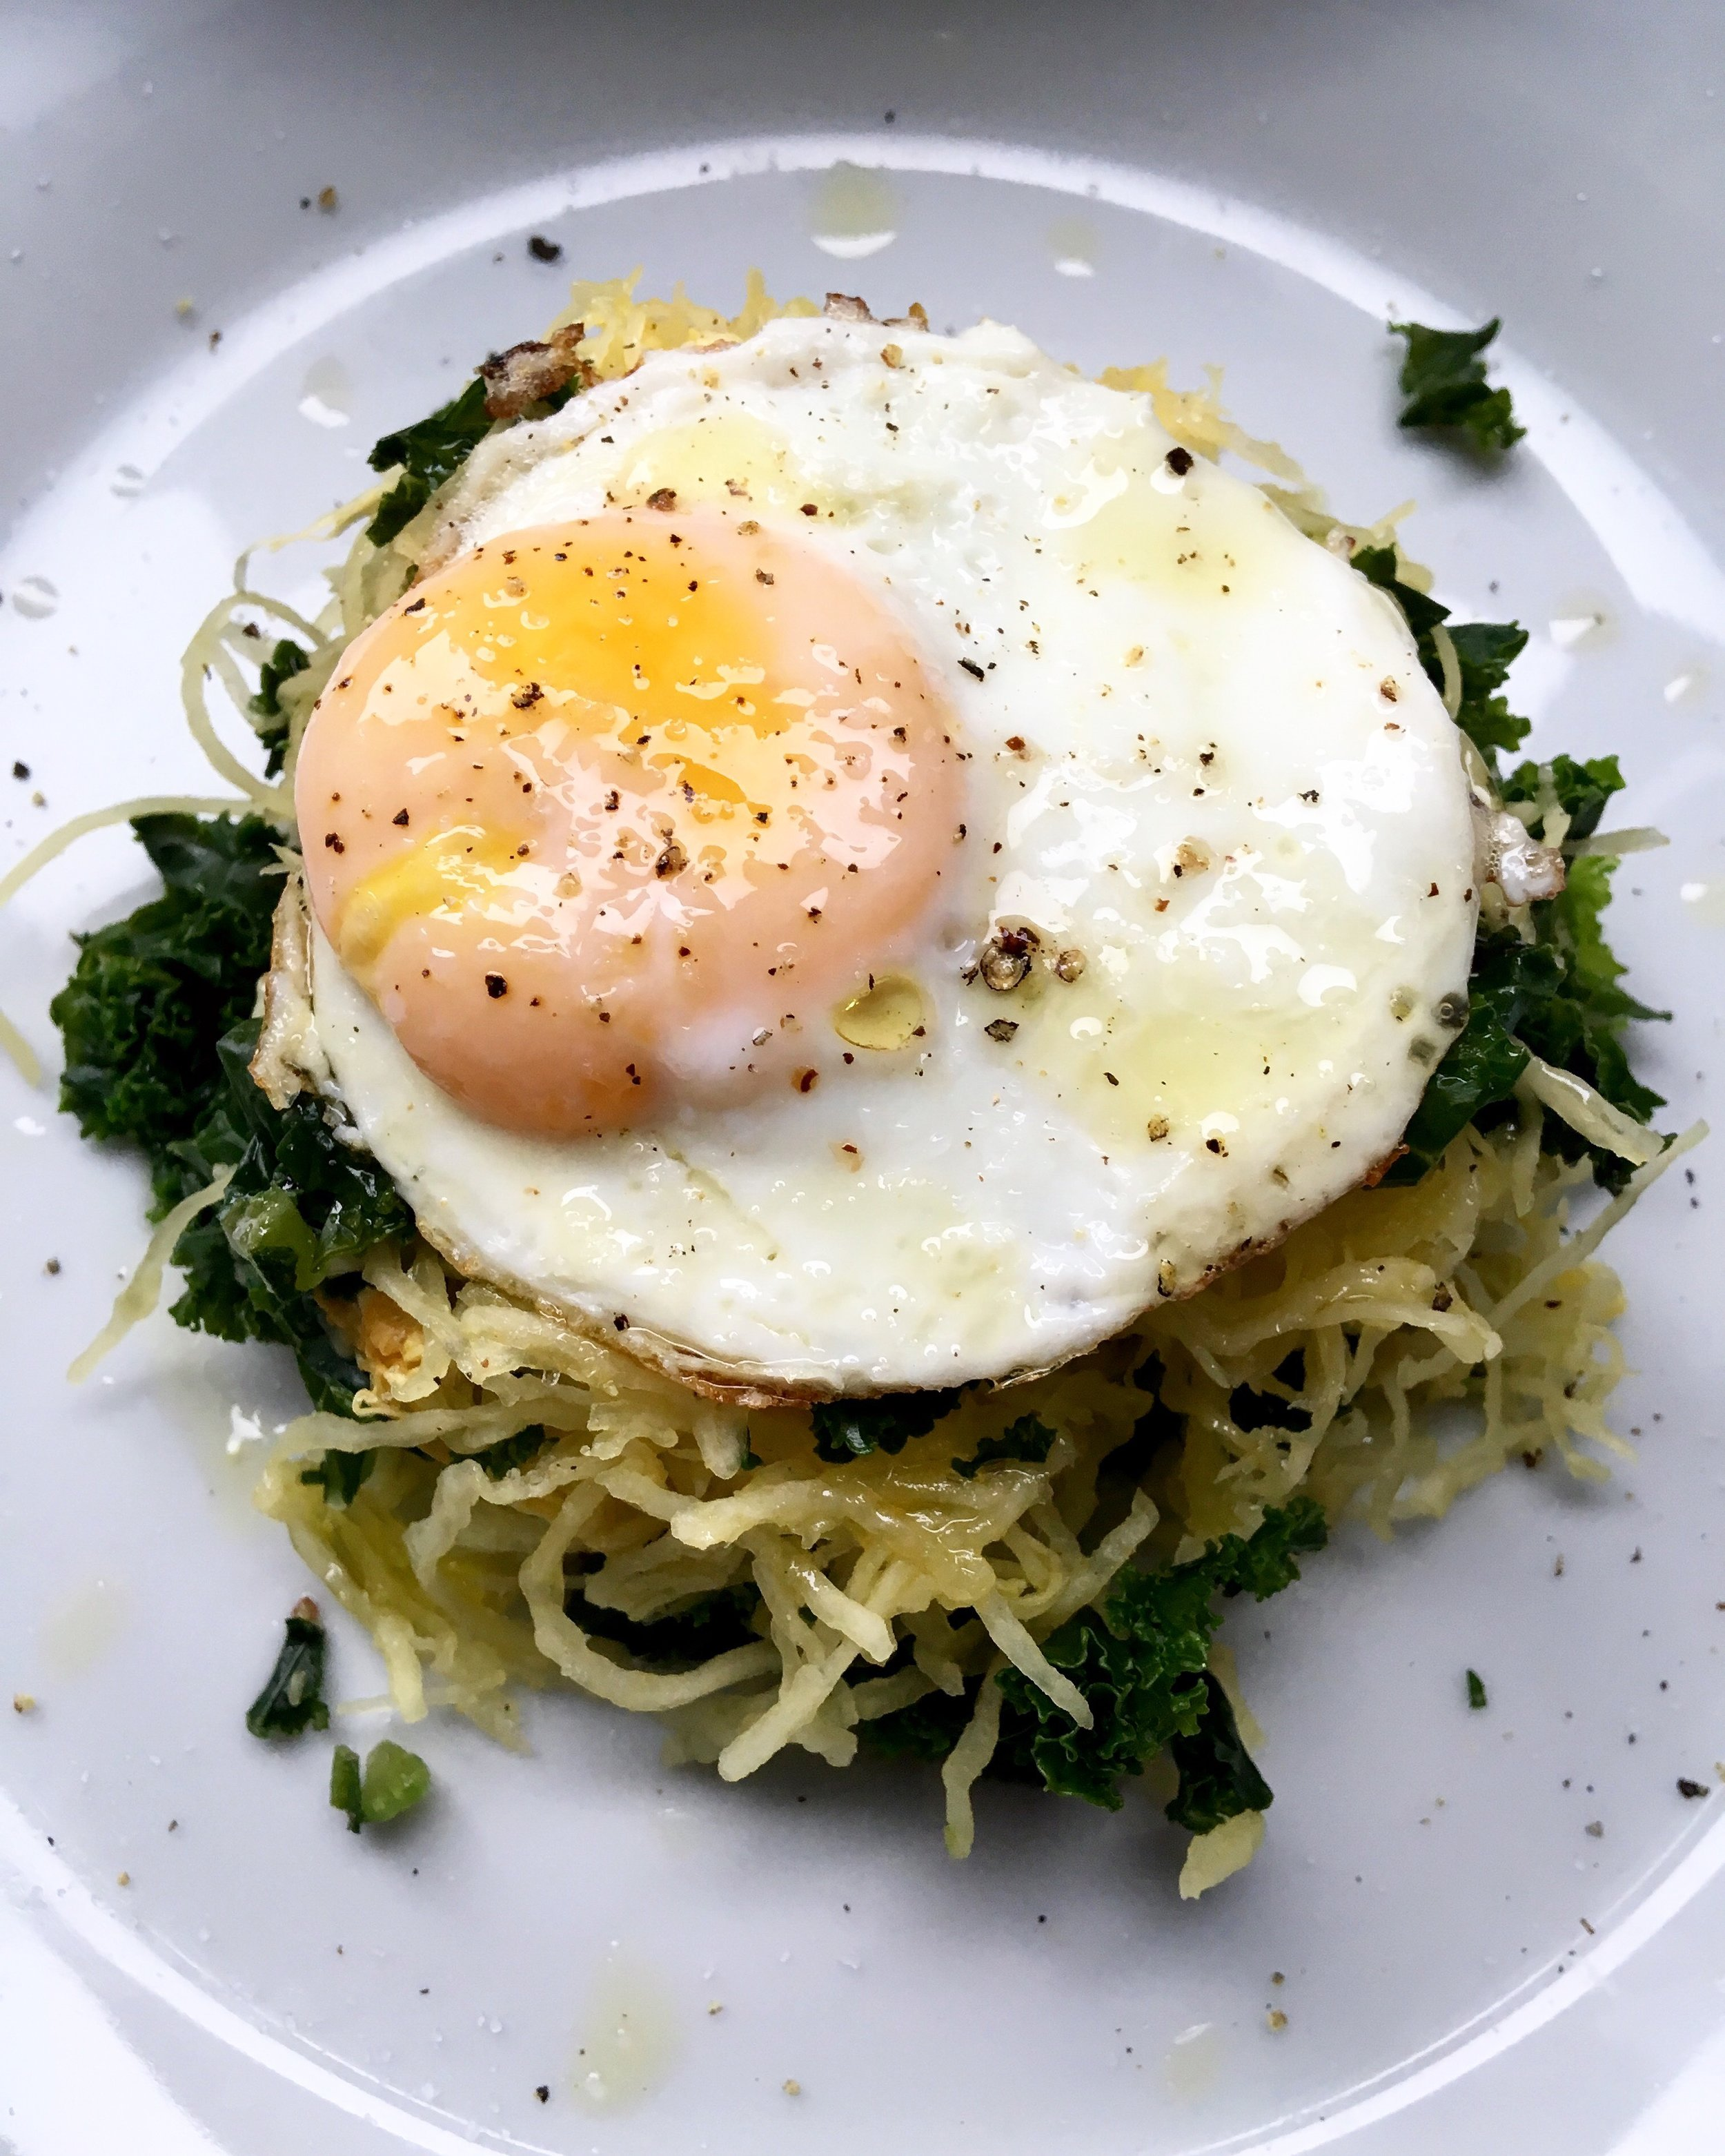 roasted spaghetti squash + kale nest with sunny side up egg